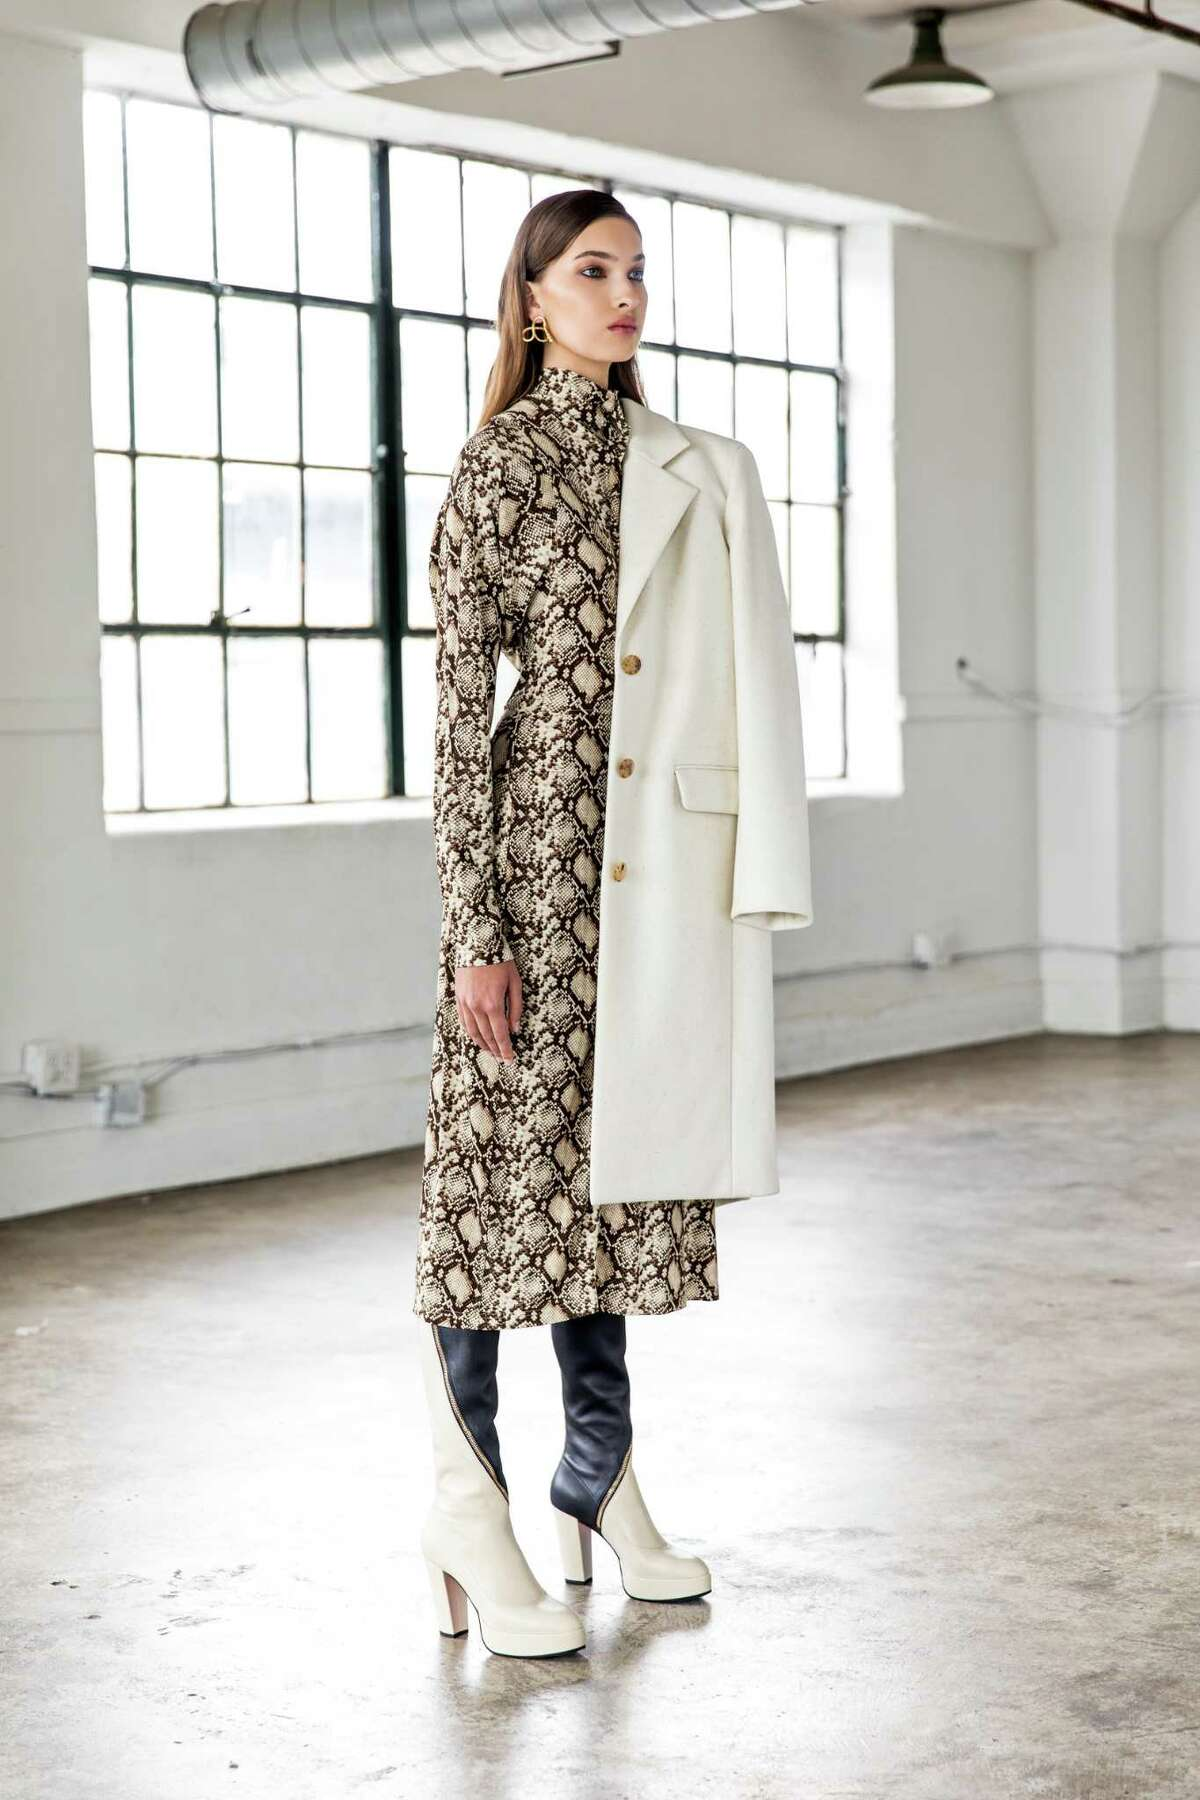 Celine snake print dress, $2,300, The Row cream coat, $1,990, and Gucci boots, $1,980, all at The Webster. Jennifer Behr earrings, $395, at Tootsies.